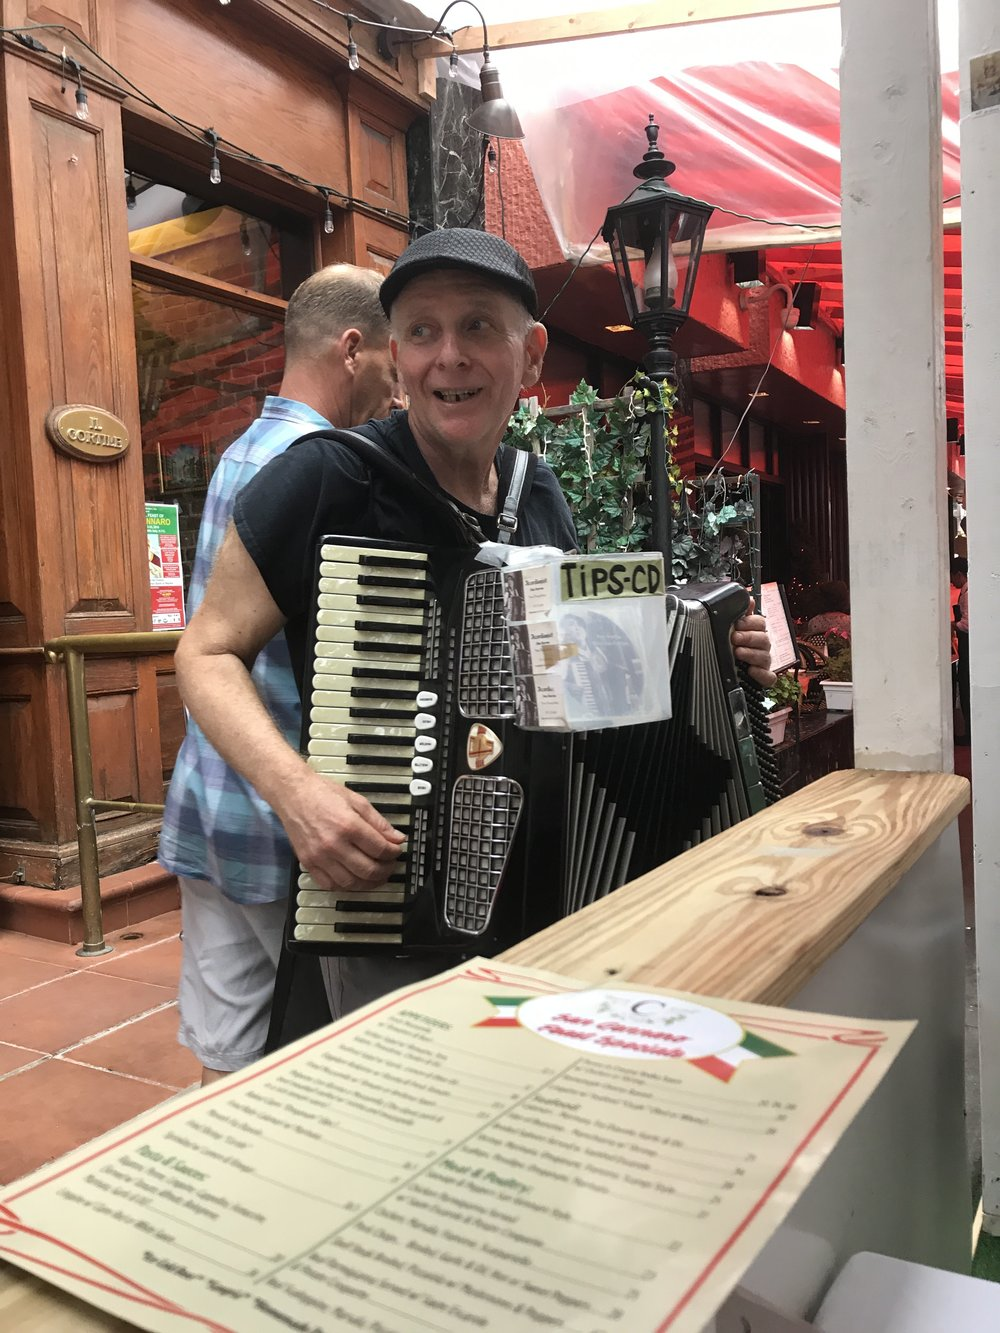 Serenaded by accordion